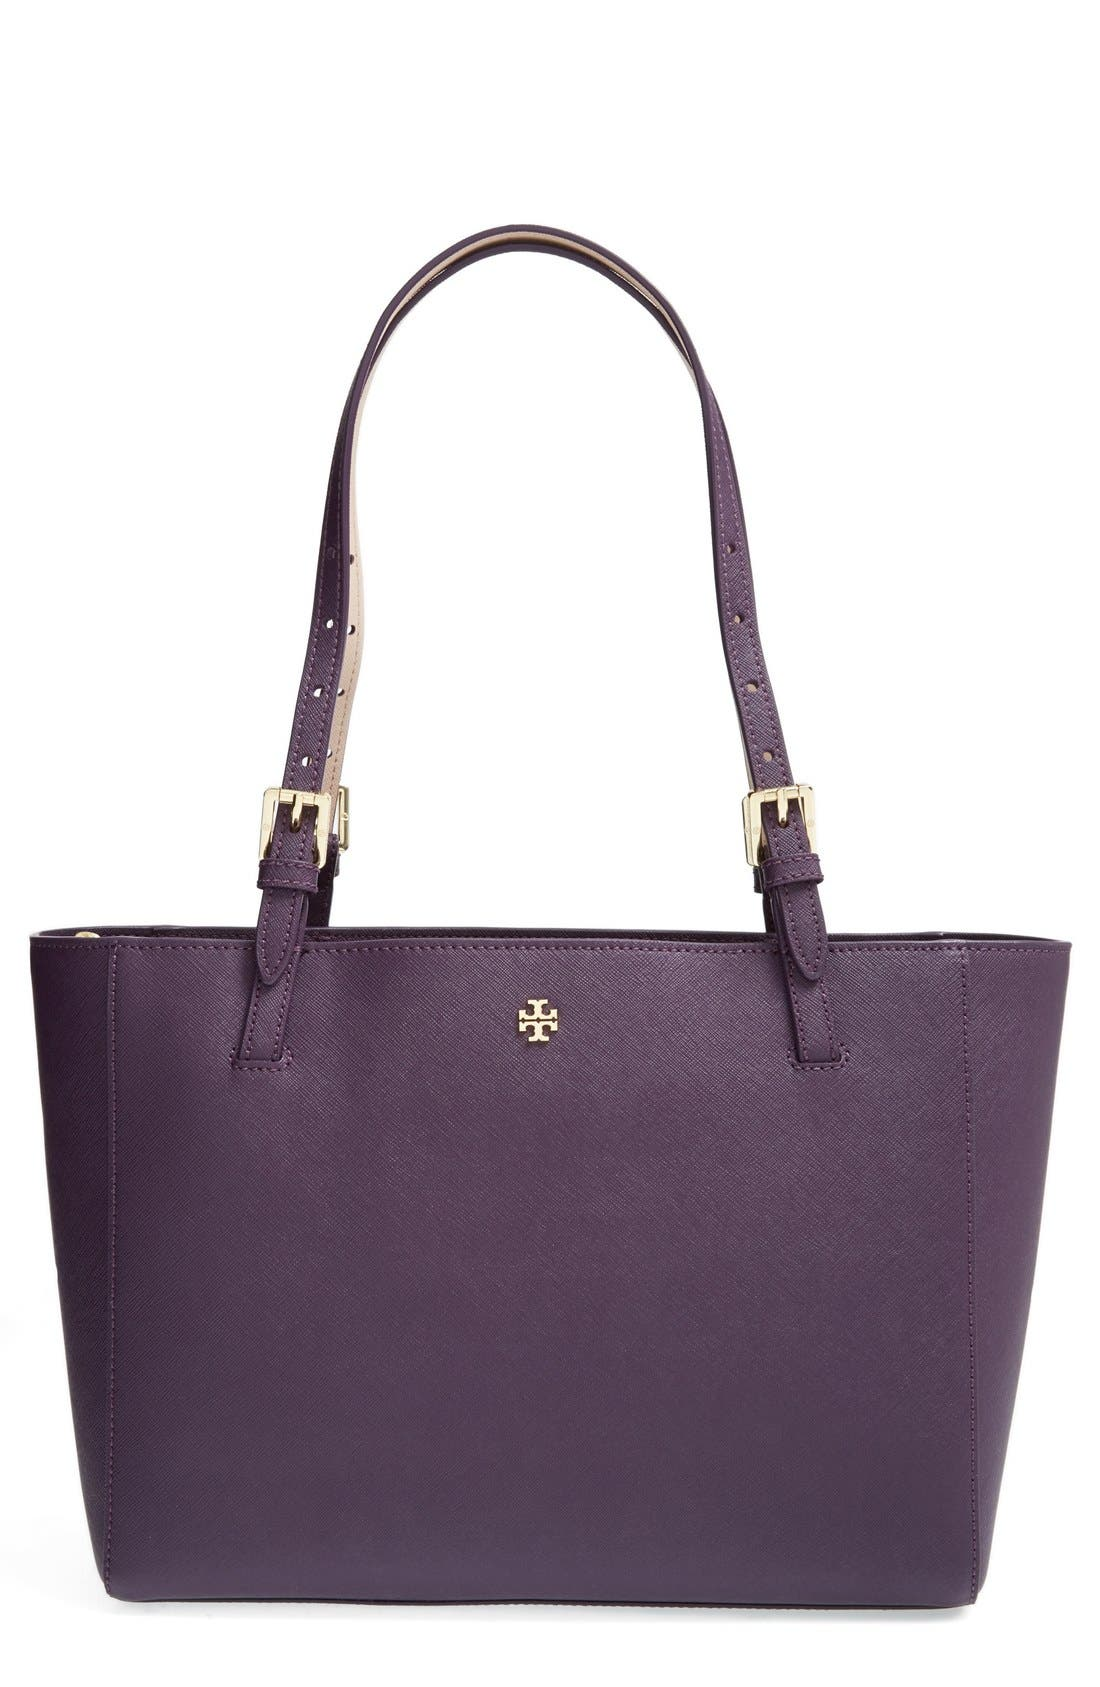 'Small York' Saffiano Leather Buckle Tote,                             Main thumbnail 13, color,